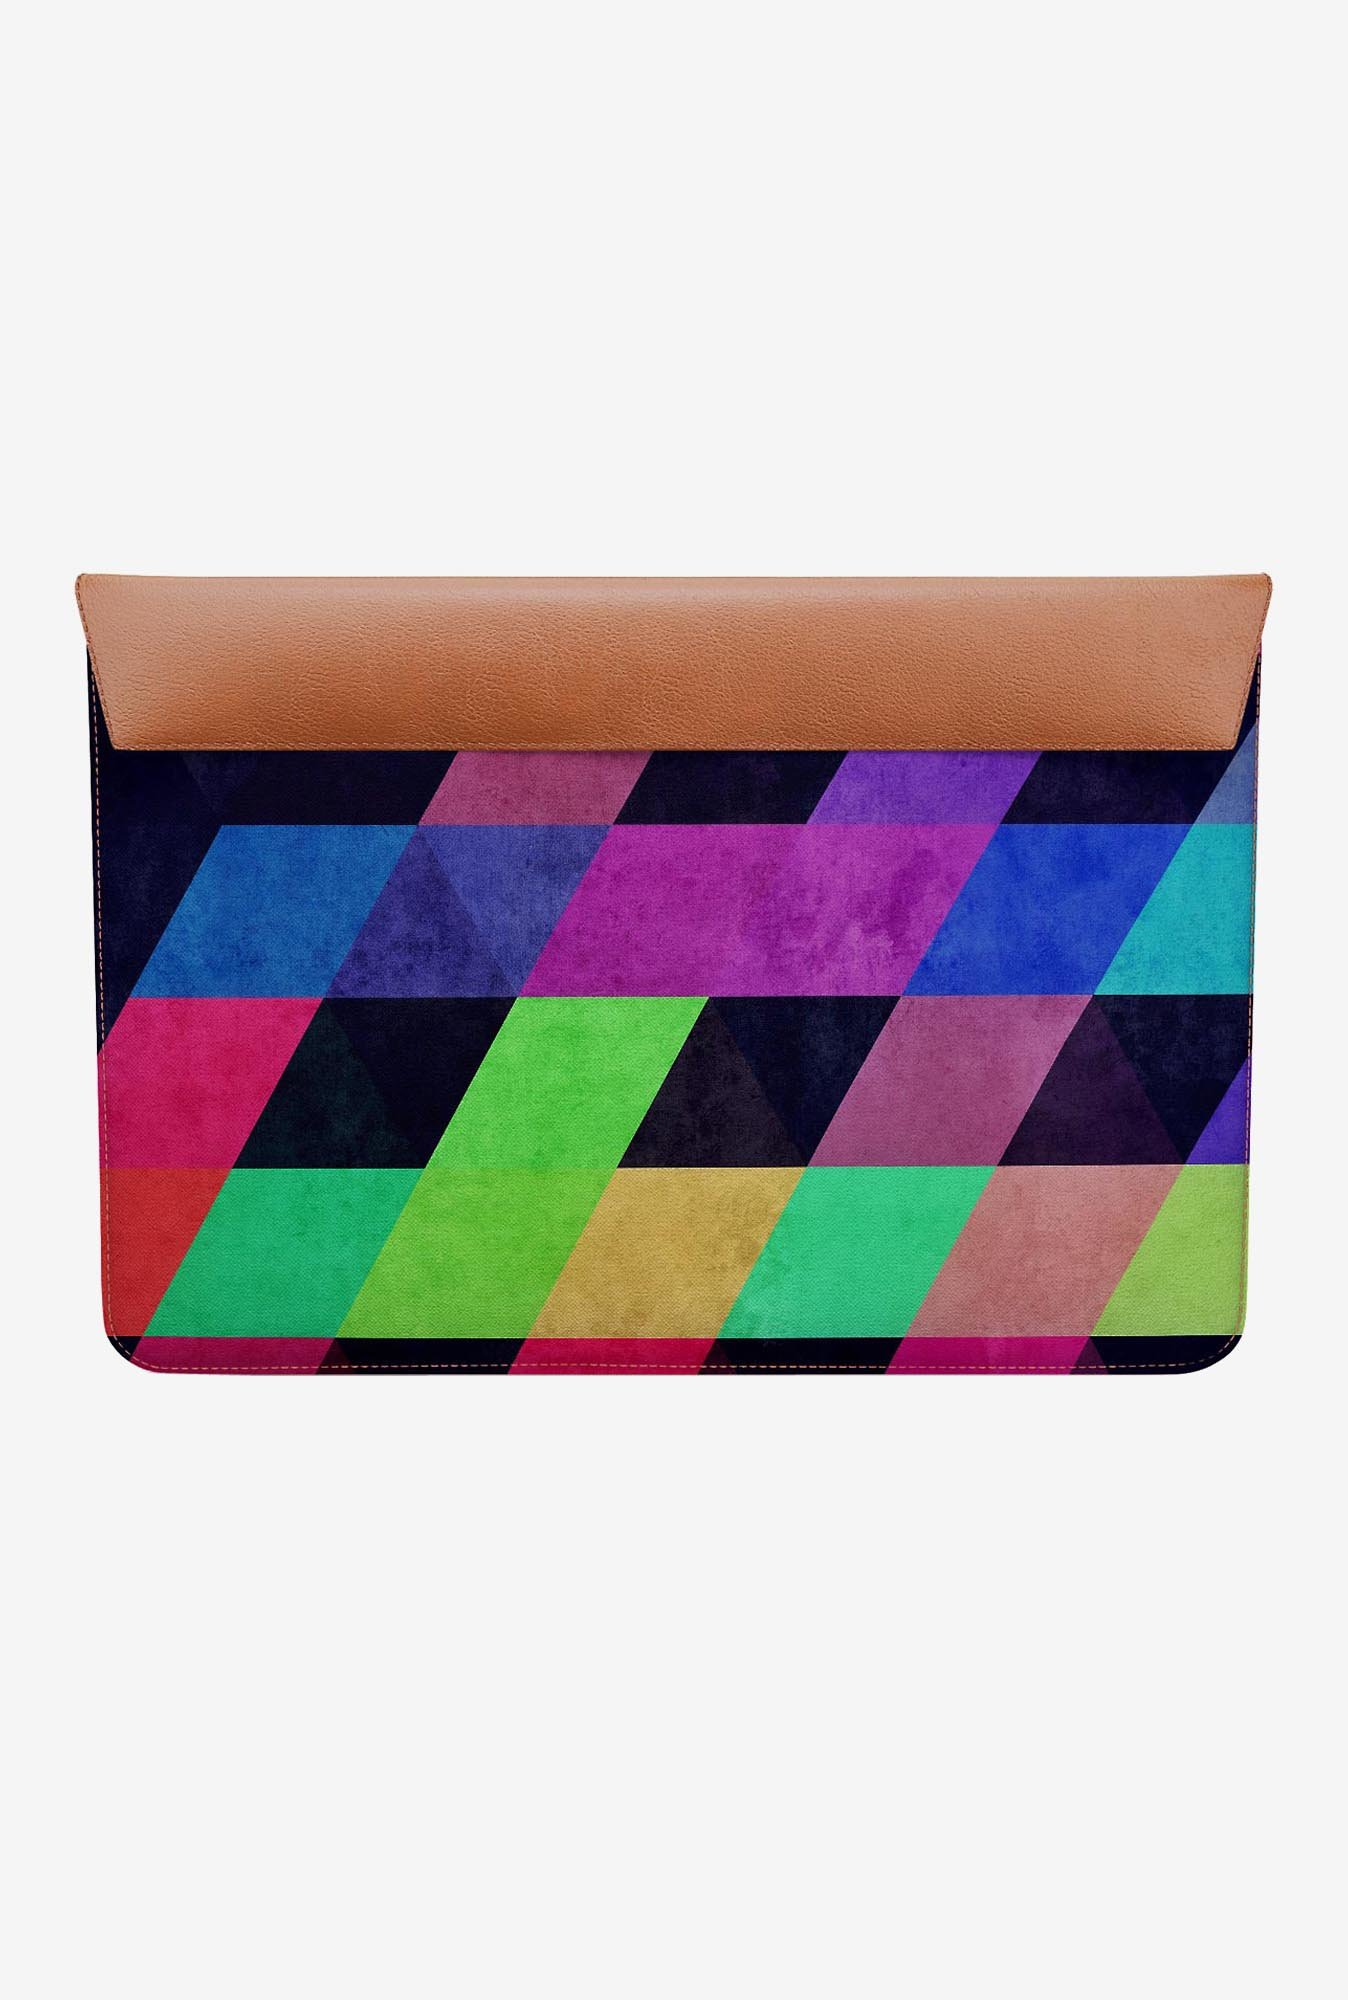 "DailyObjects Mynycs Macbook Air 11"" Envelope Sleeve"